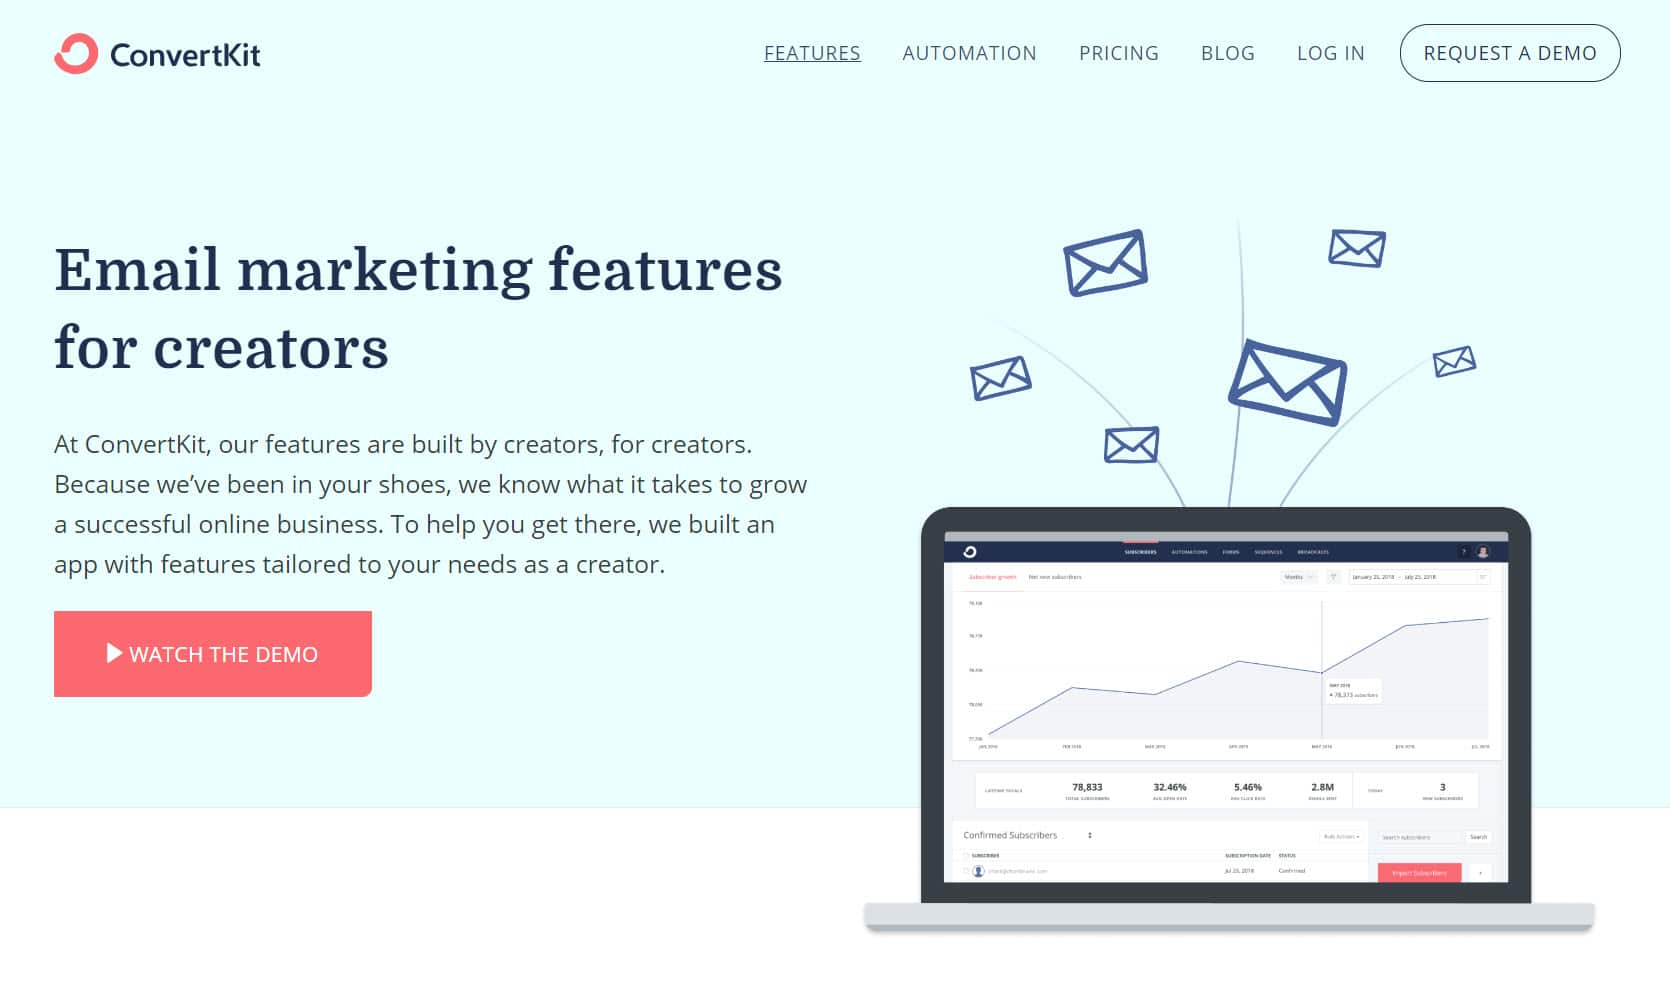 75% Off Online Voucher Code Email Marketing May 2020